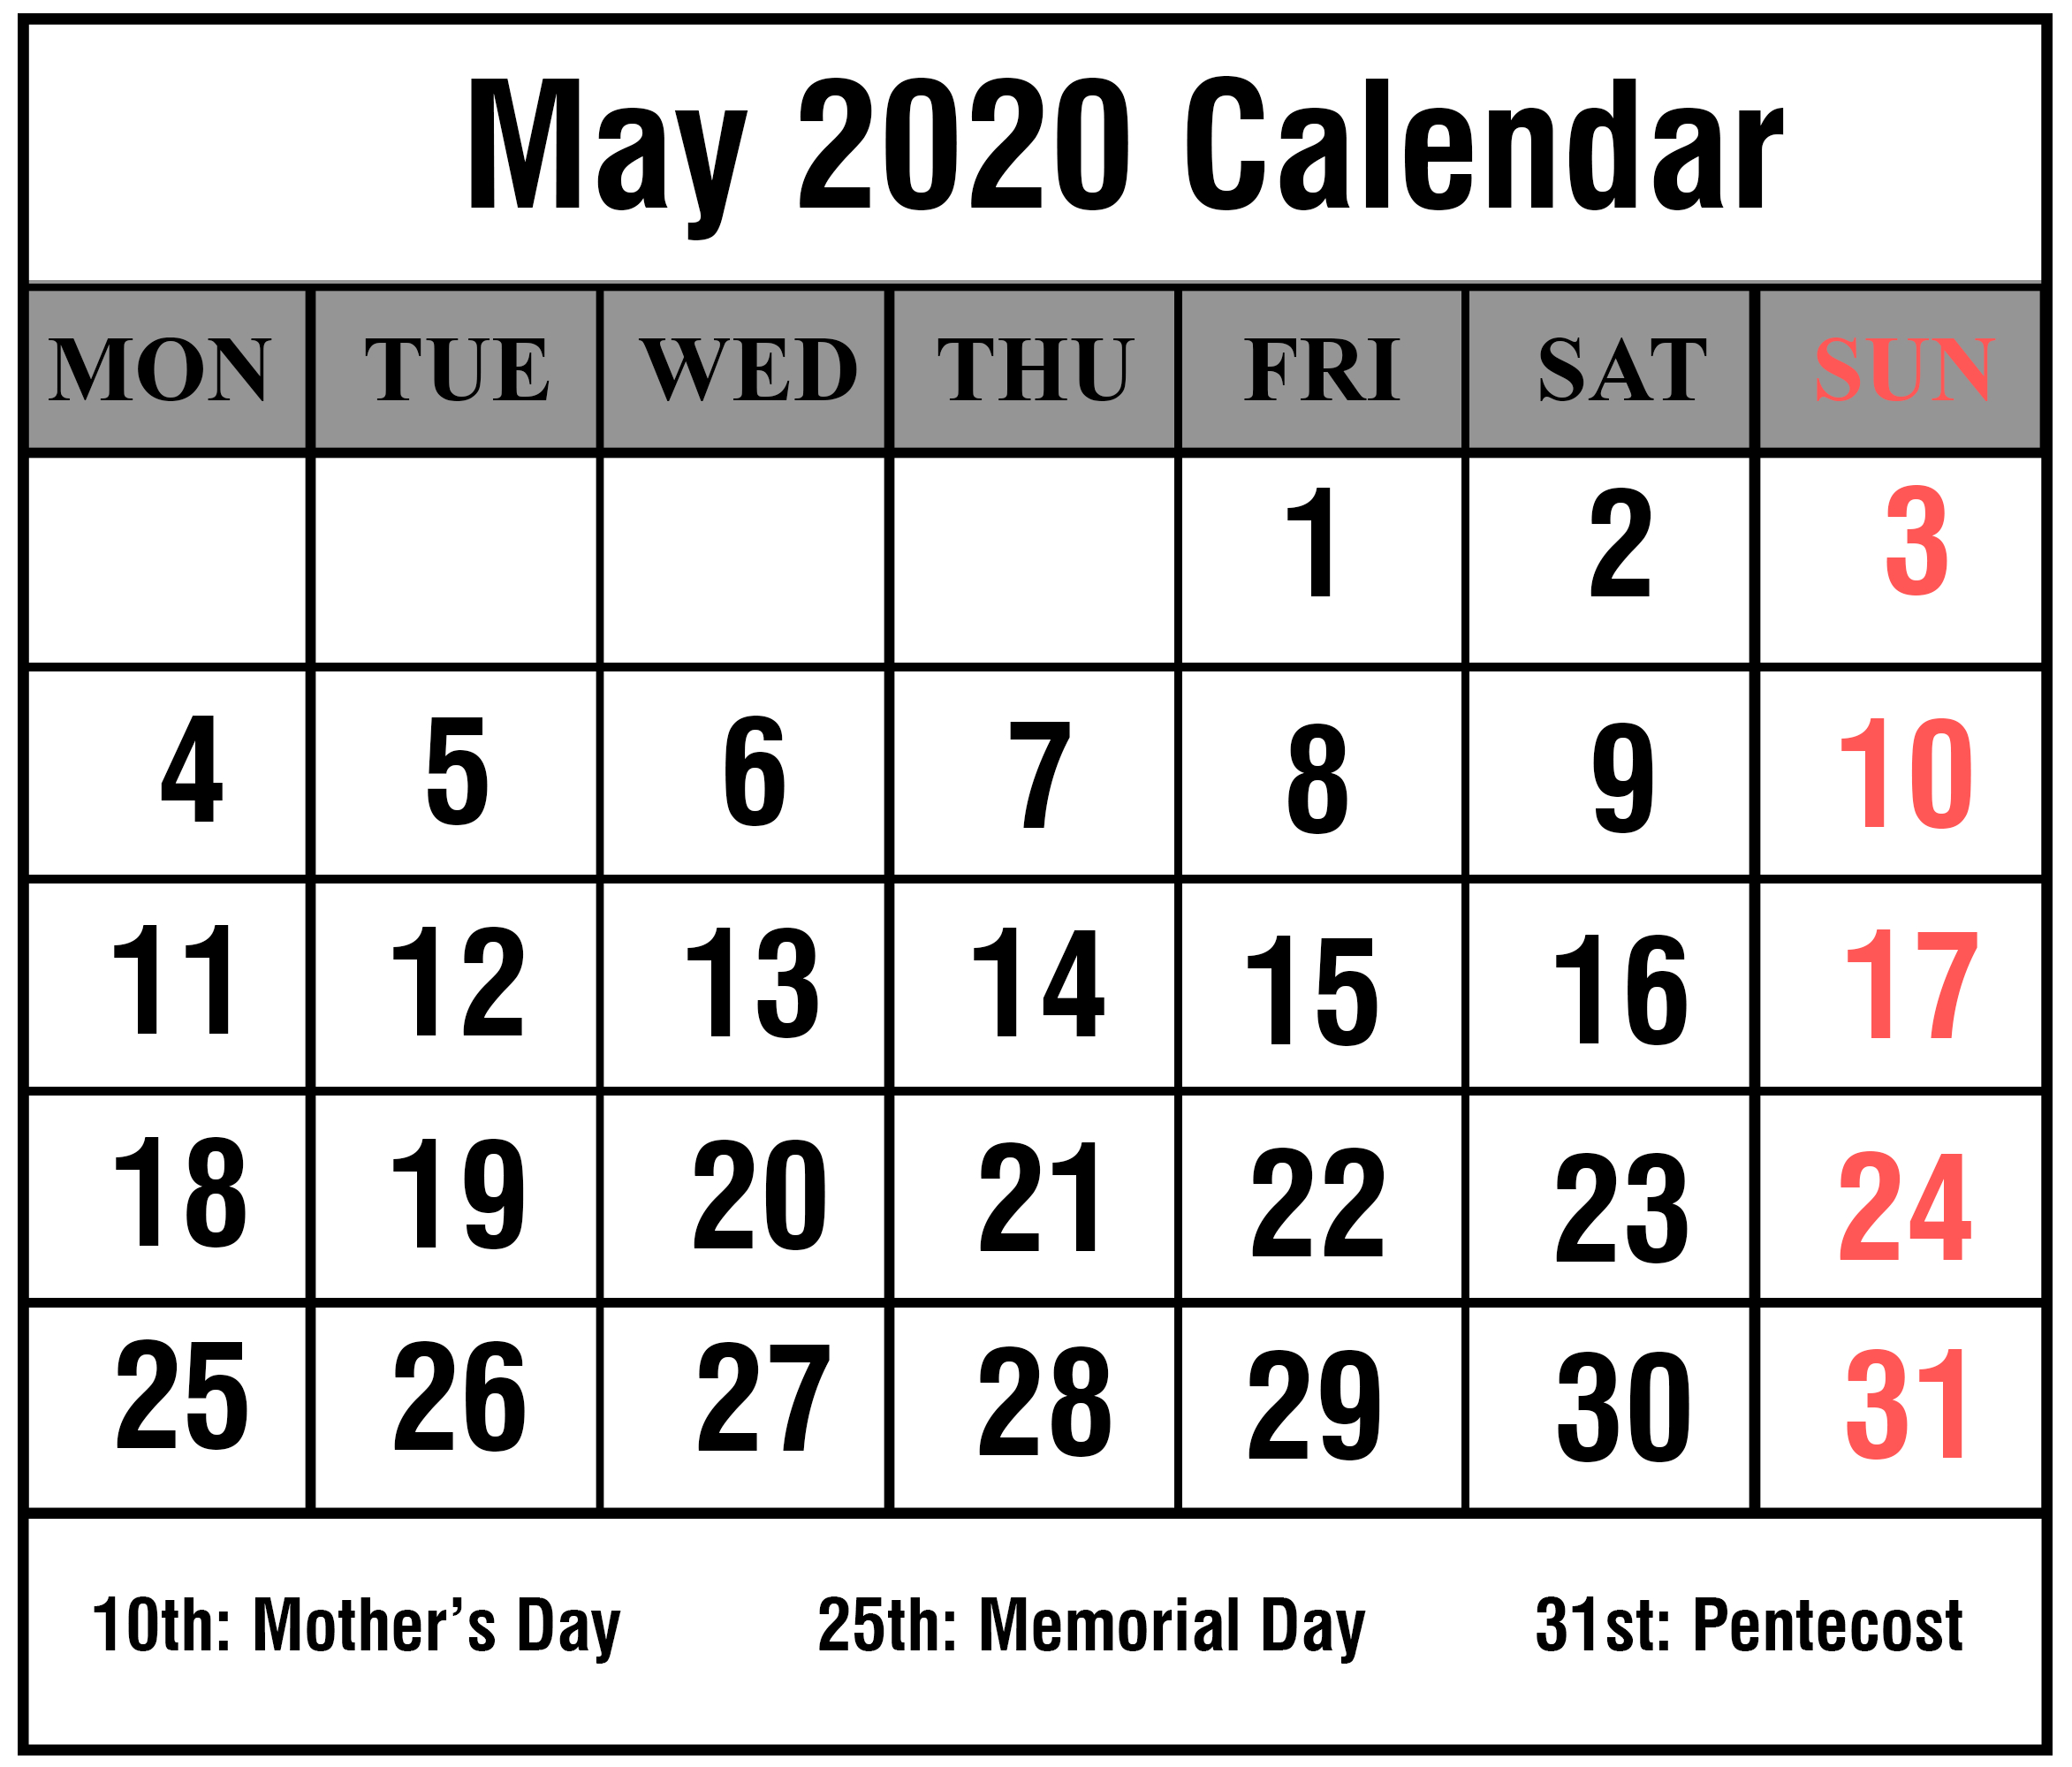 Free Blank May 2020 Printable Calendar [Pdf, Excel & Word]